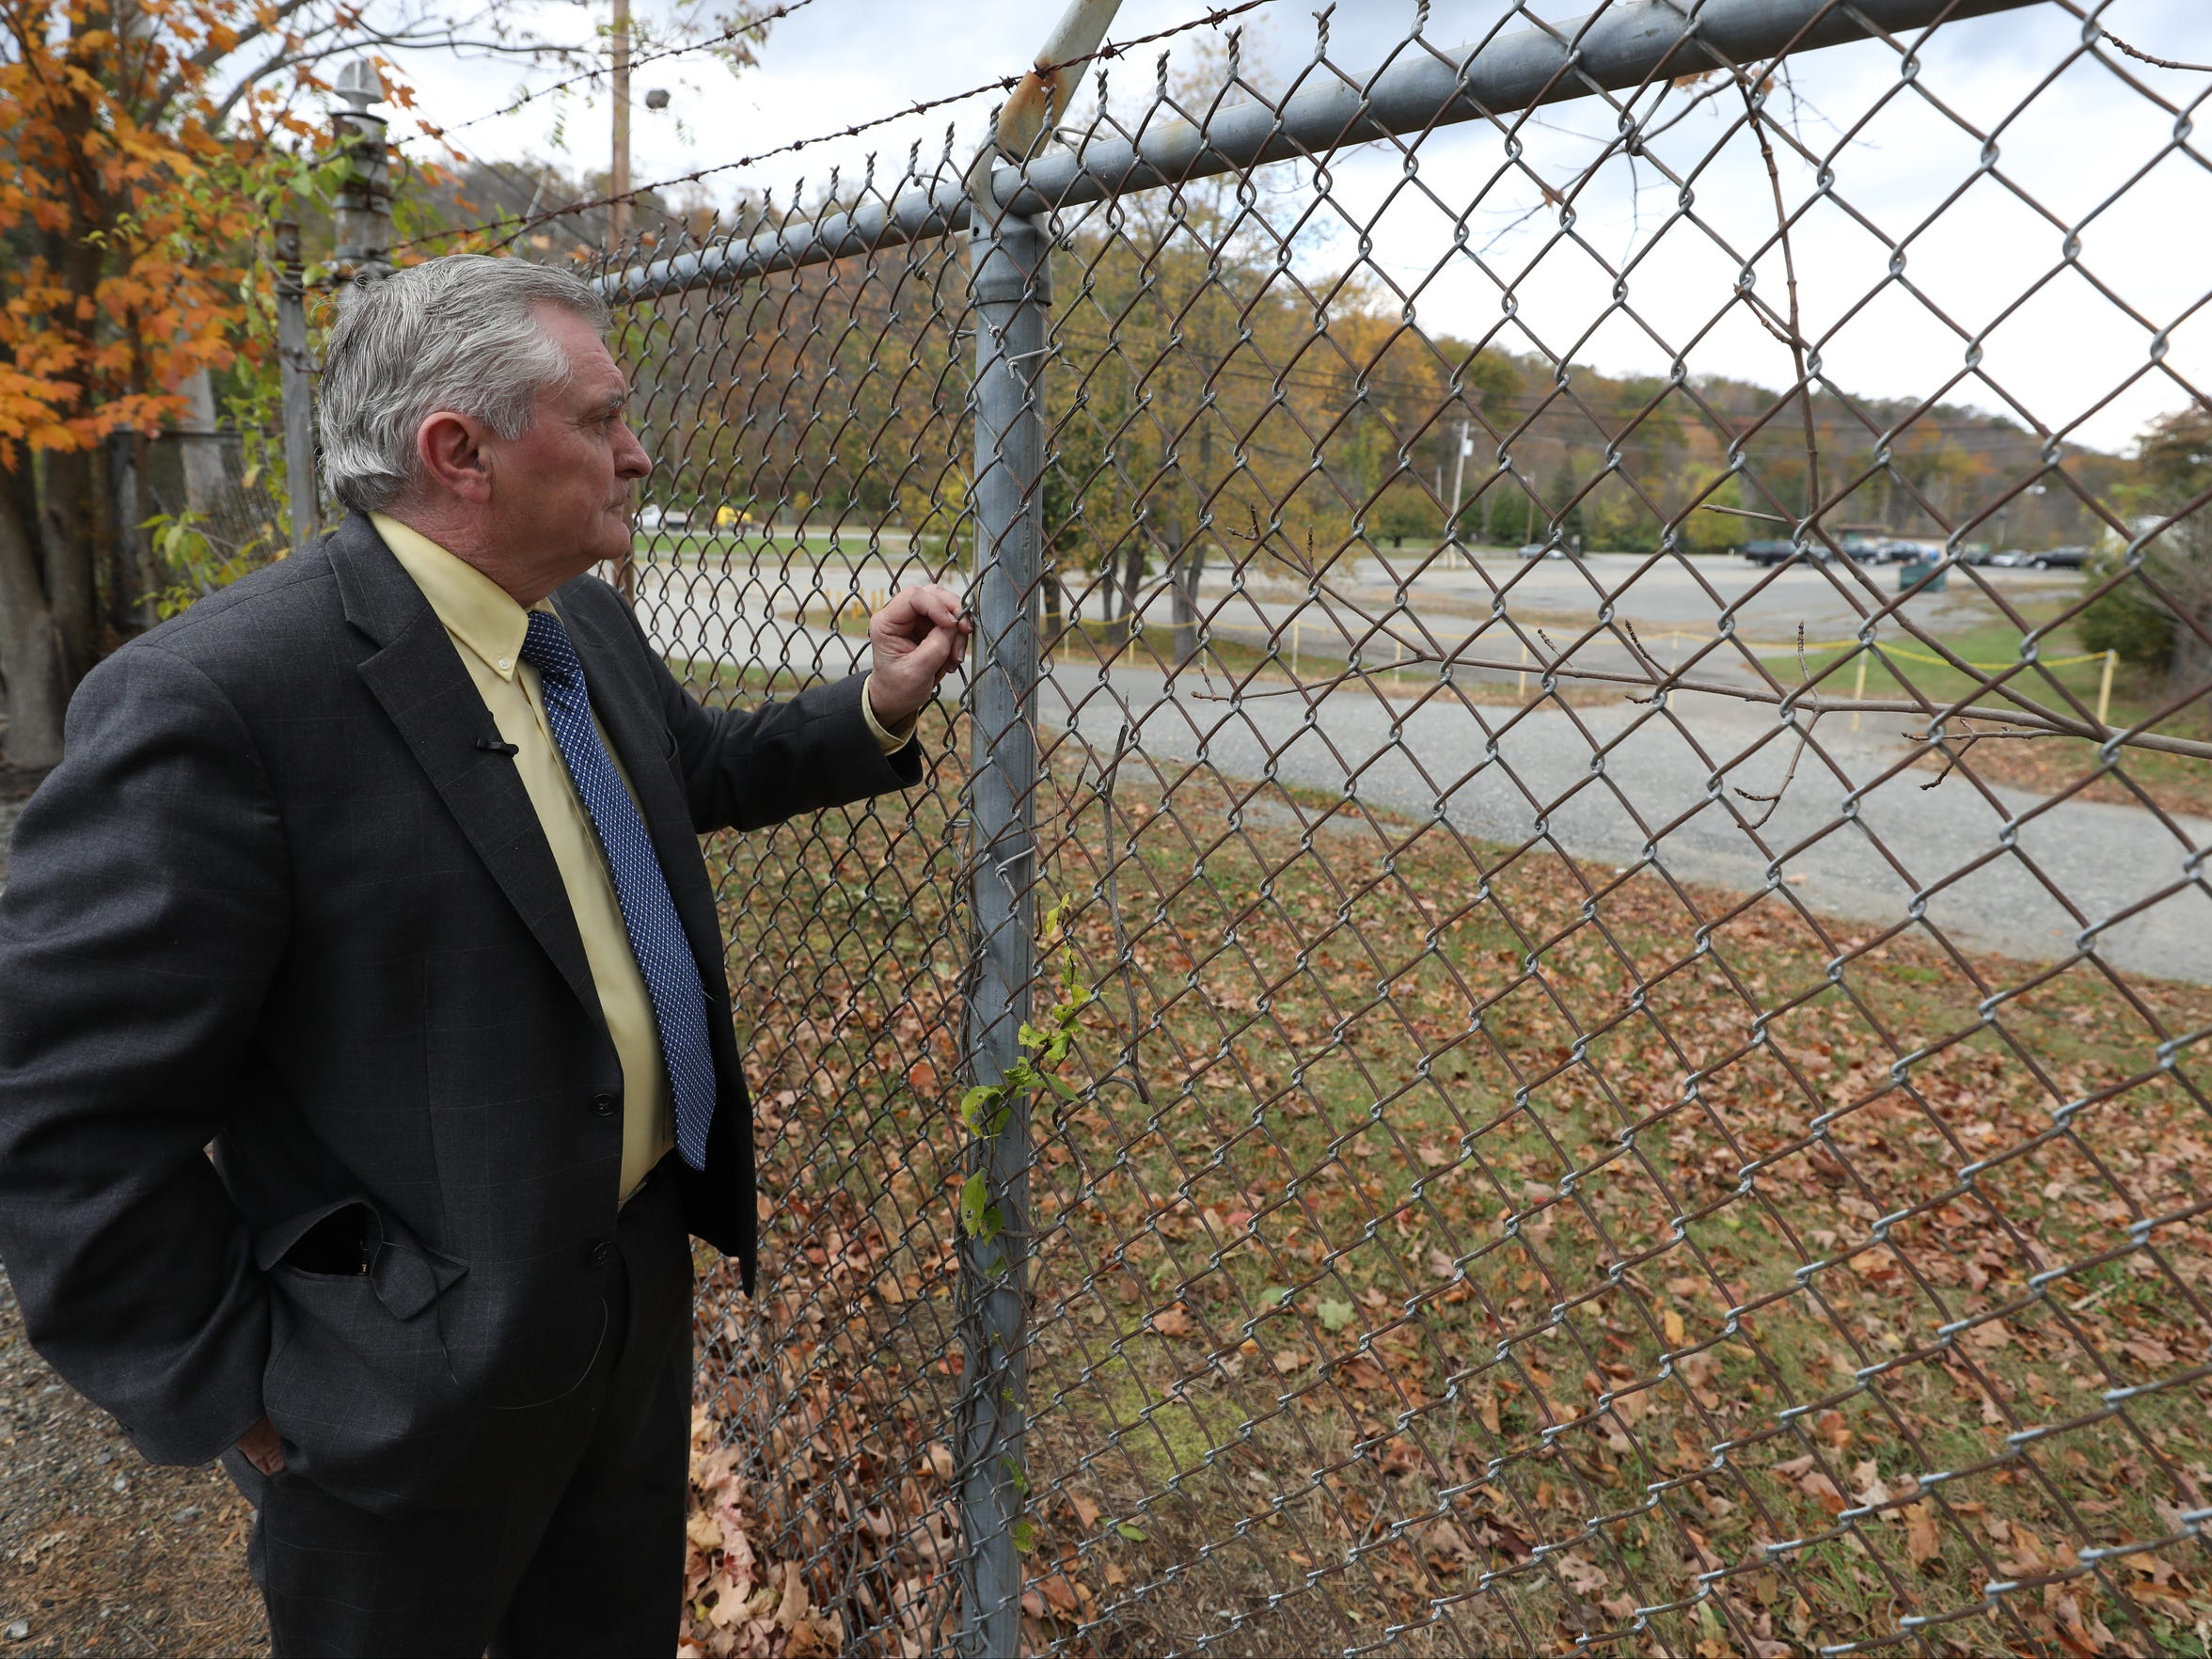 Former Pompton Lakes Mayor John Sinsimer looks toward DuPont's former munitions site in the borough. In 1988 he was credited with broadening an investigation of groundwater contamination on site to the adjacent neighborhood.